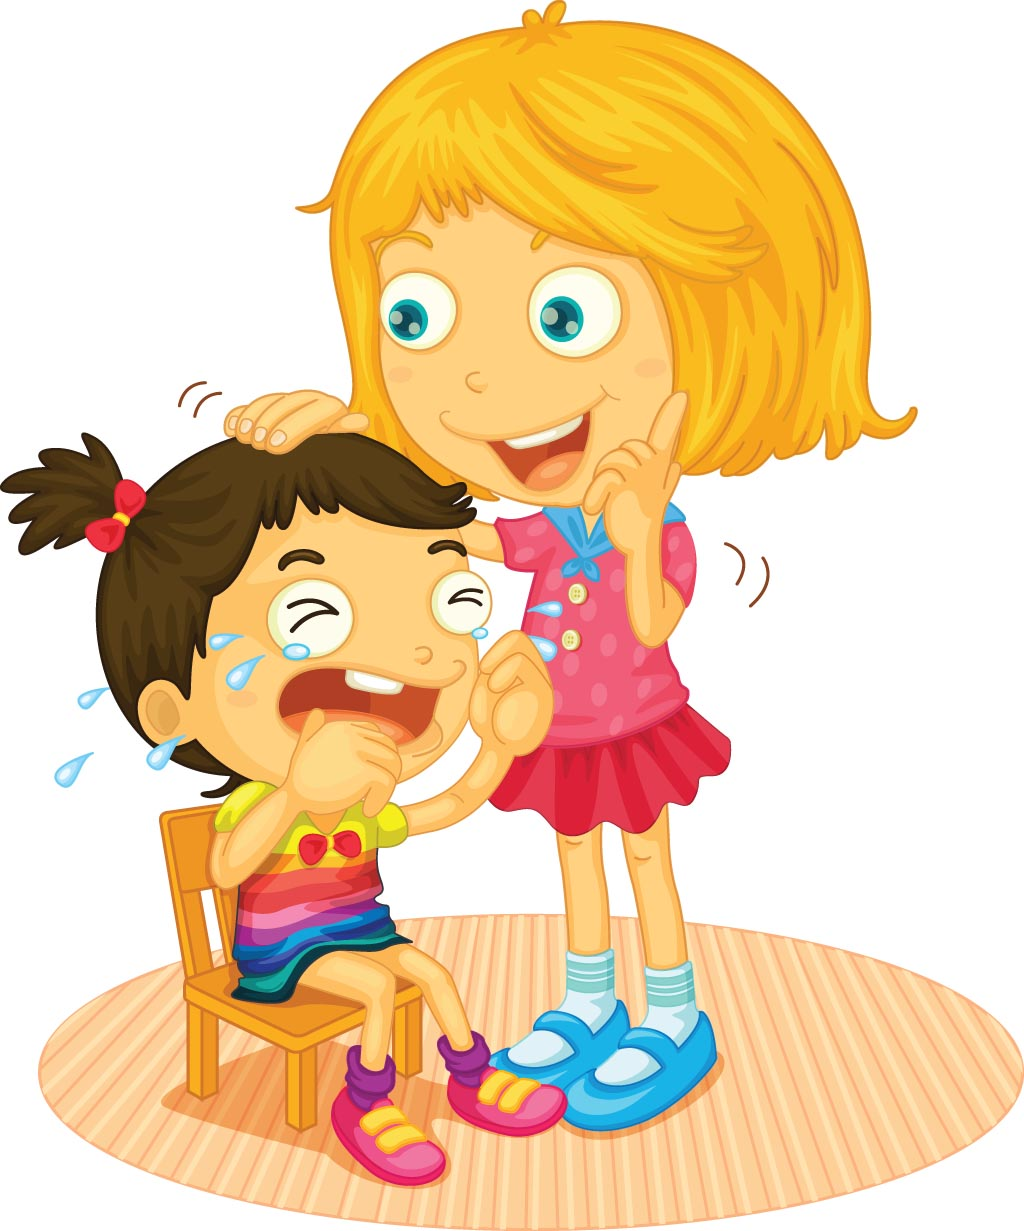 Girl consoling a friend: The Good Turn - A story for kids